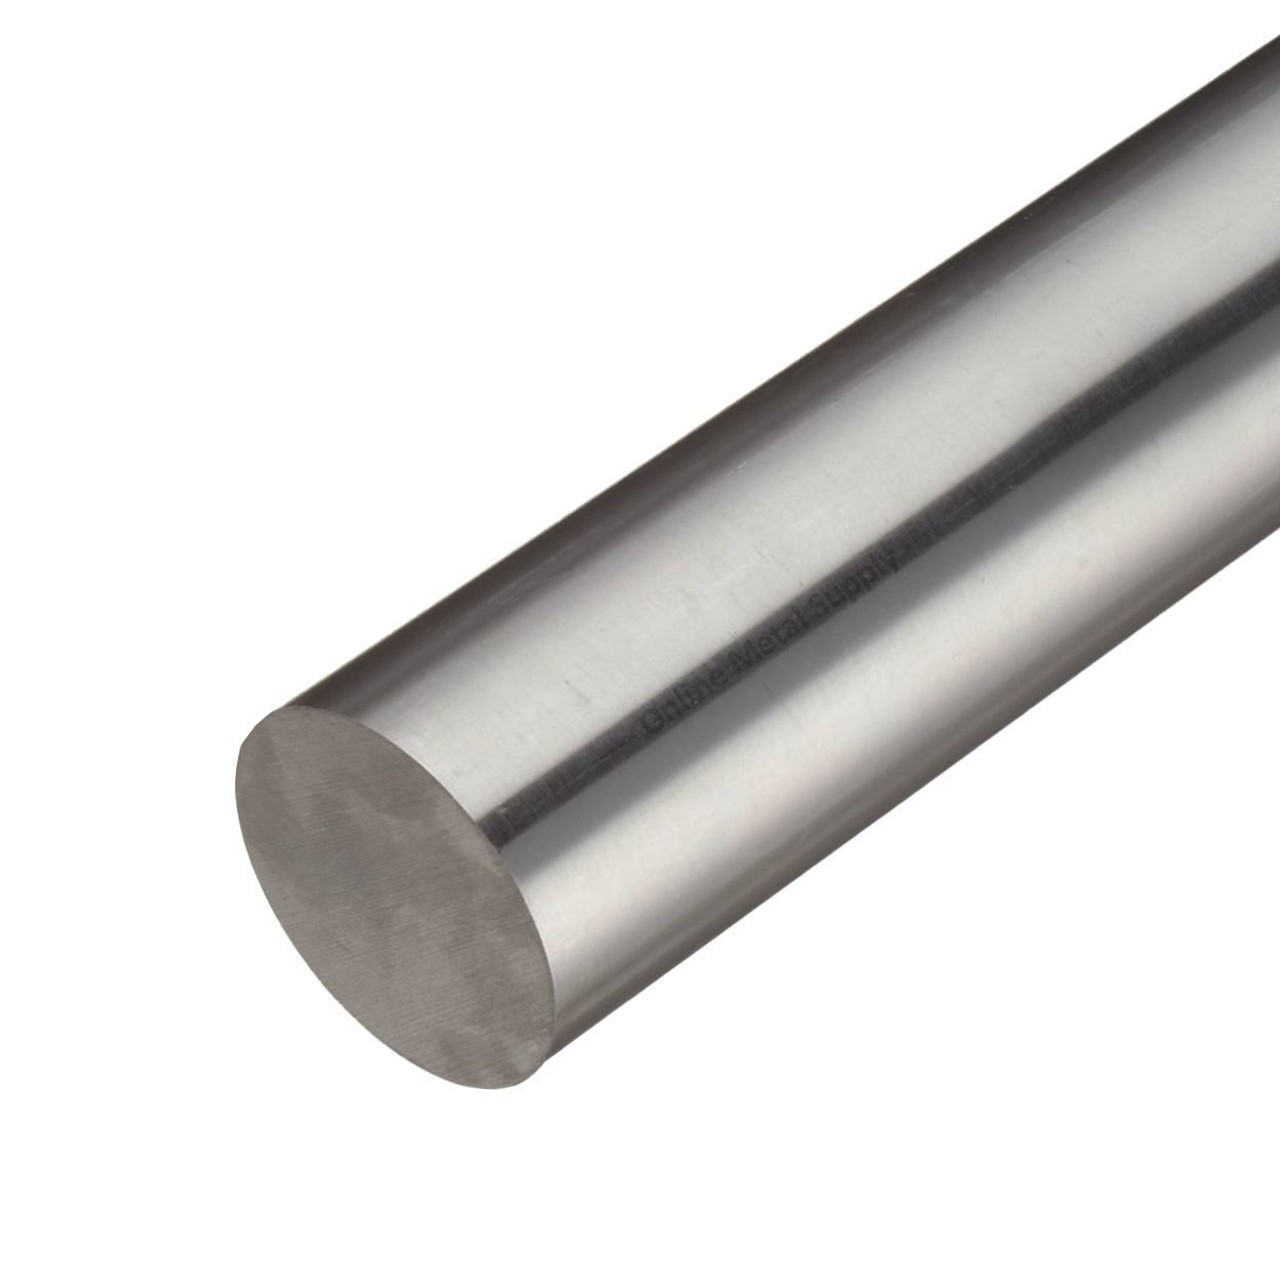 1.687 (1-11/16 inch) x 24 inches, 416 CF Stainless Steel Round Rod